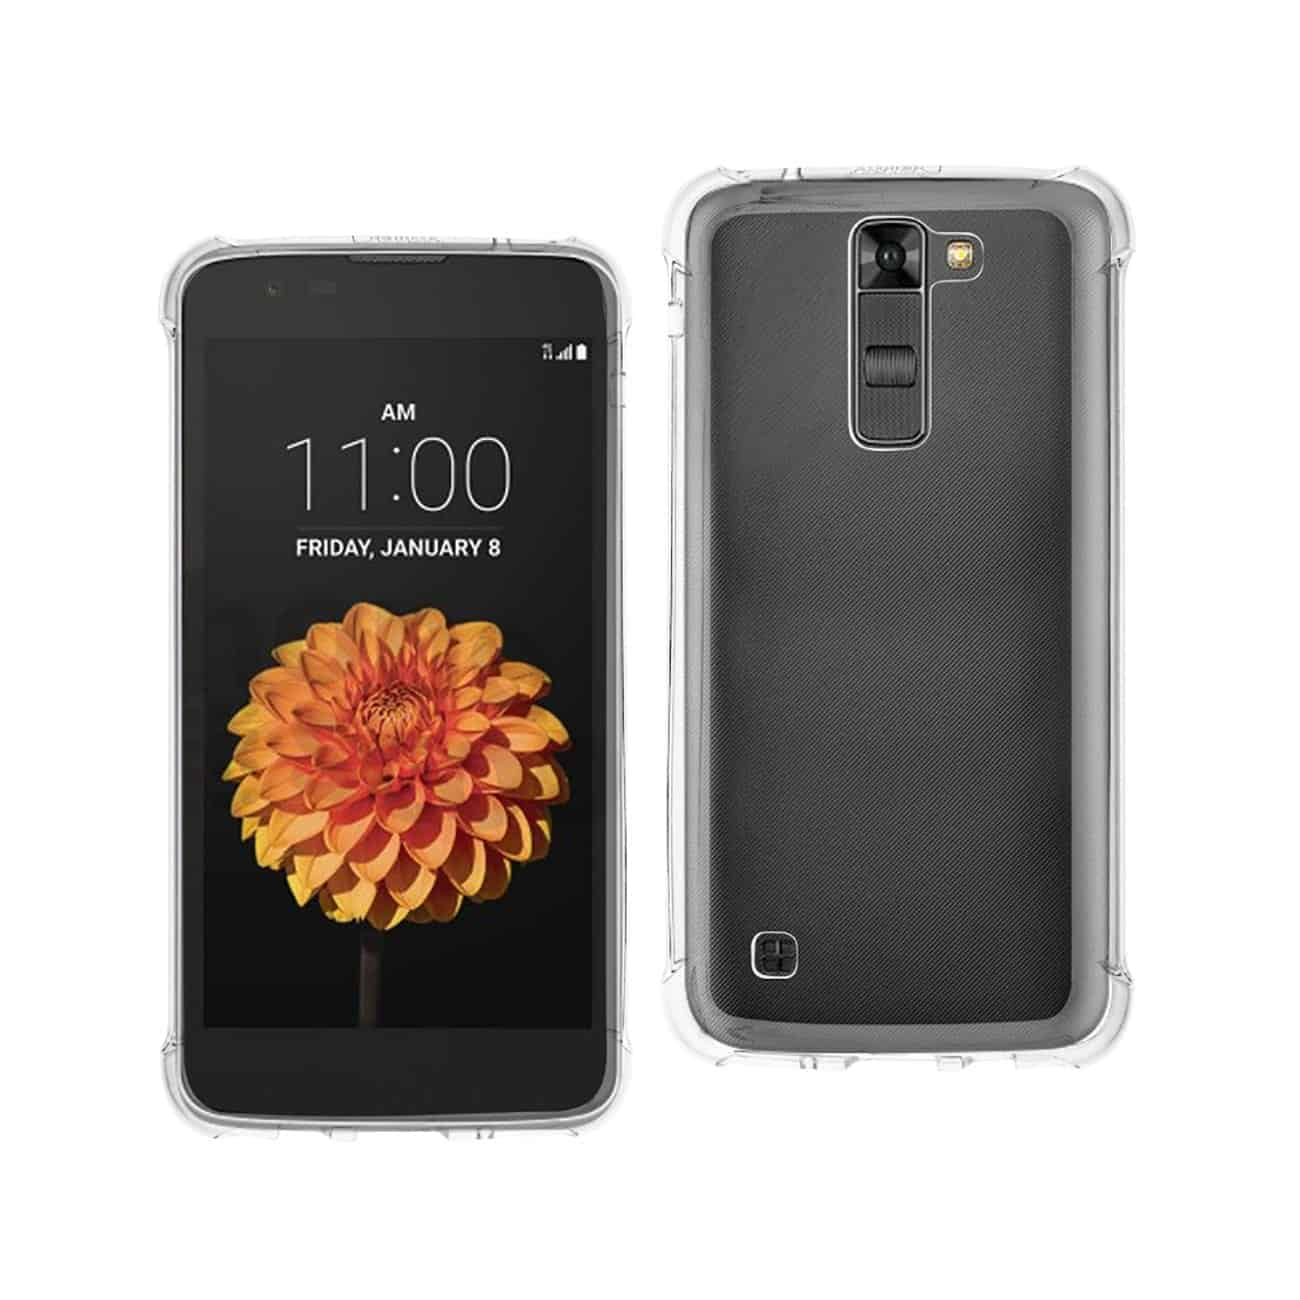 LG K7 CLEAR BUMPER CASE WITH AIR CUSHION PROTECTION IN CLEAR